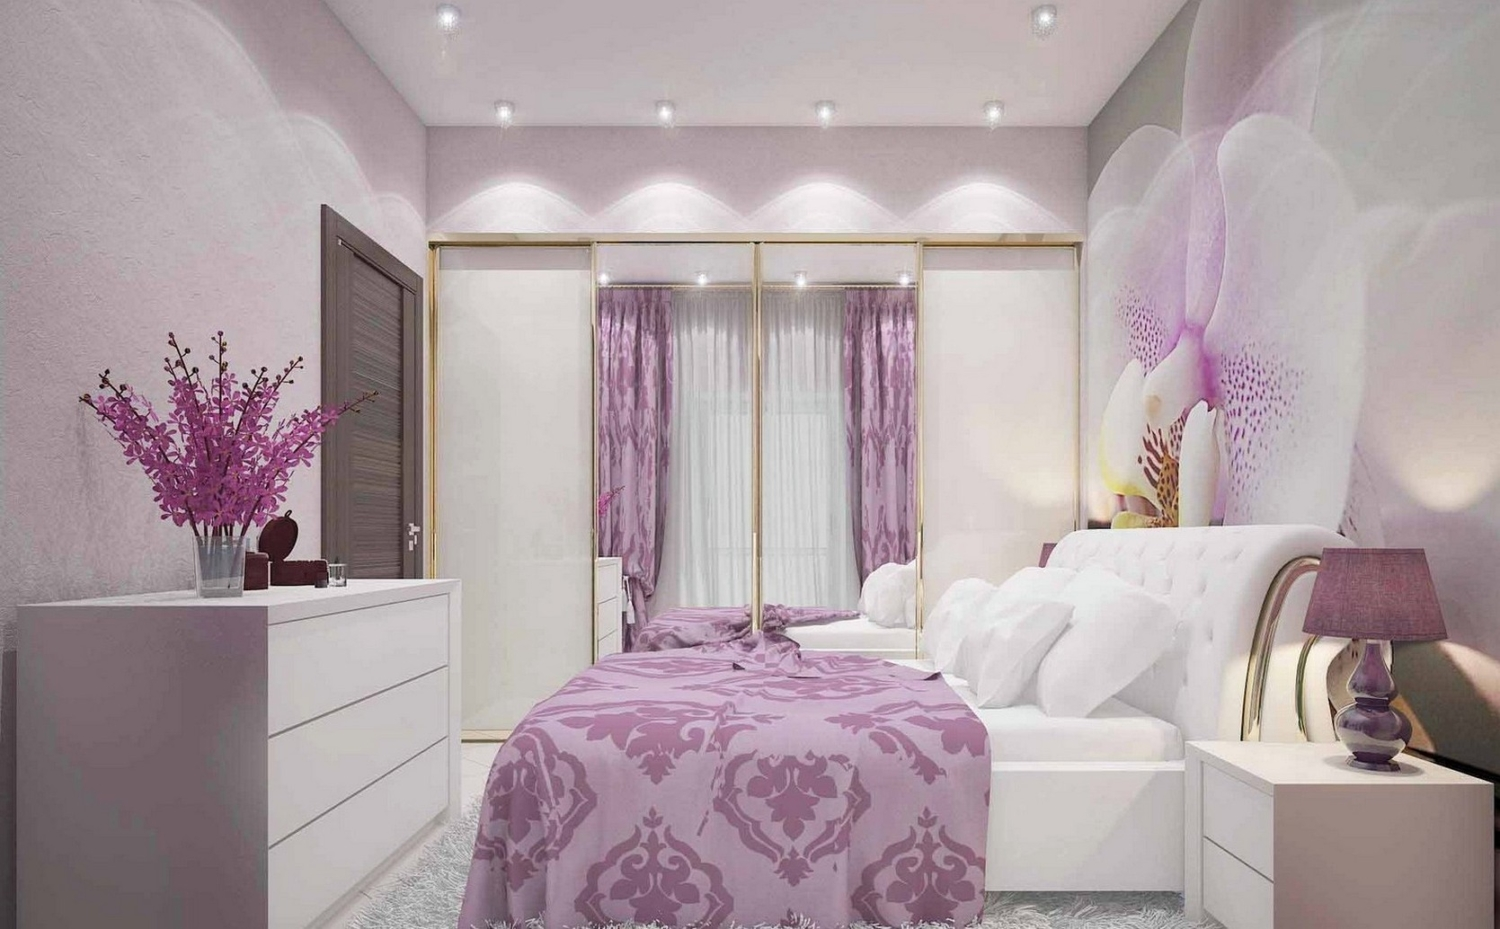 Cozy Feminine Bedroom Ideas for Relaxation and Boosting Your Energy. Charming lavender decoration and posh white furniture